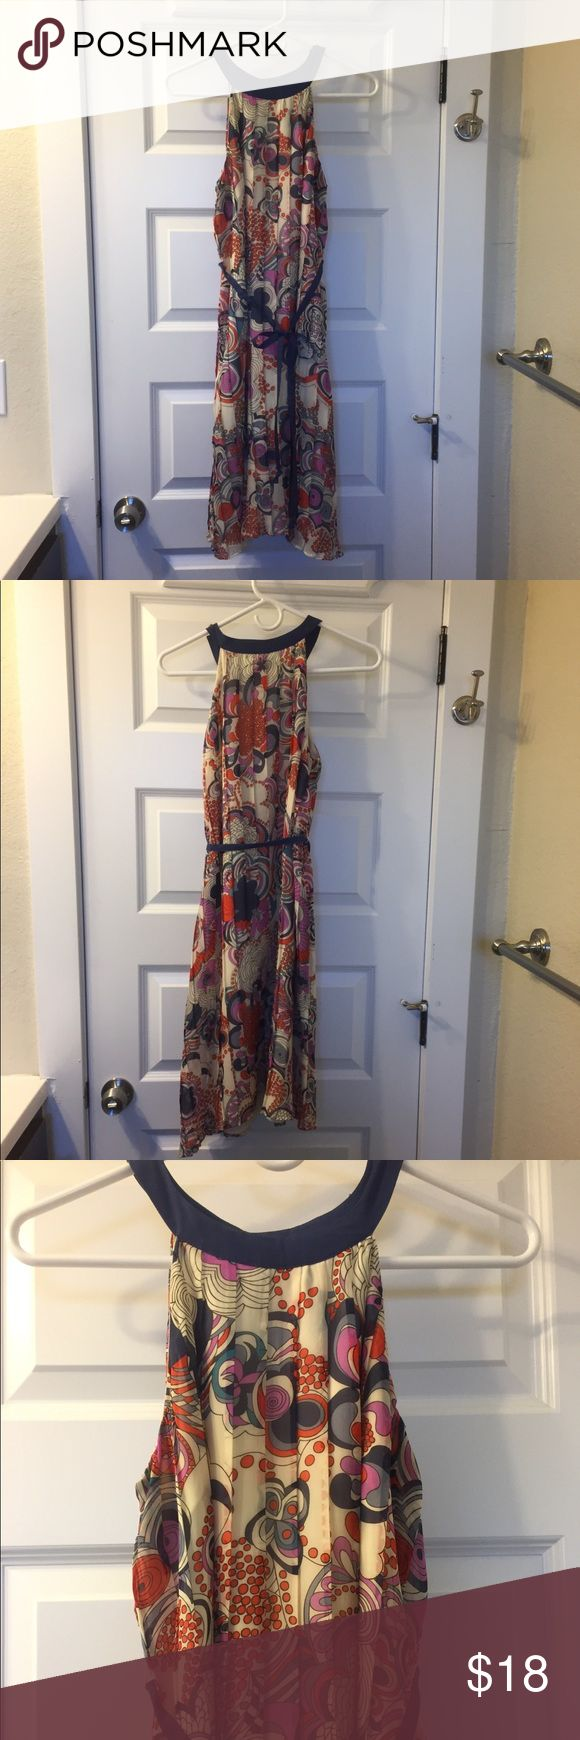 Liberty of London for Target mod pleated dress Cute and breezy mod florals on pleated chiffon make this Liberty of London for Target dress so cute for spring. Swing shape with optional included belt to define waist, or leave off for a swingy mod style. Size S. liberty of london Dresses Mini